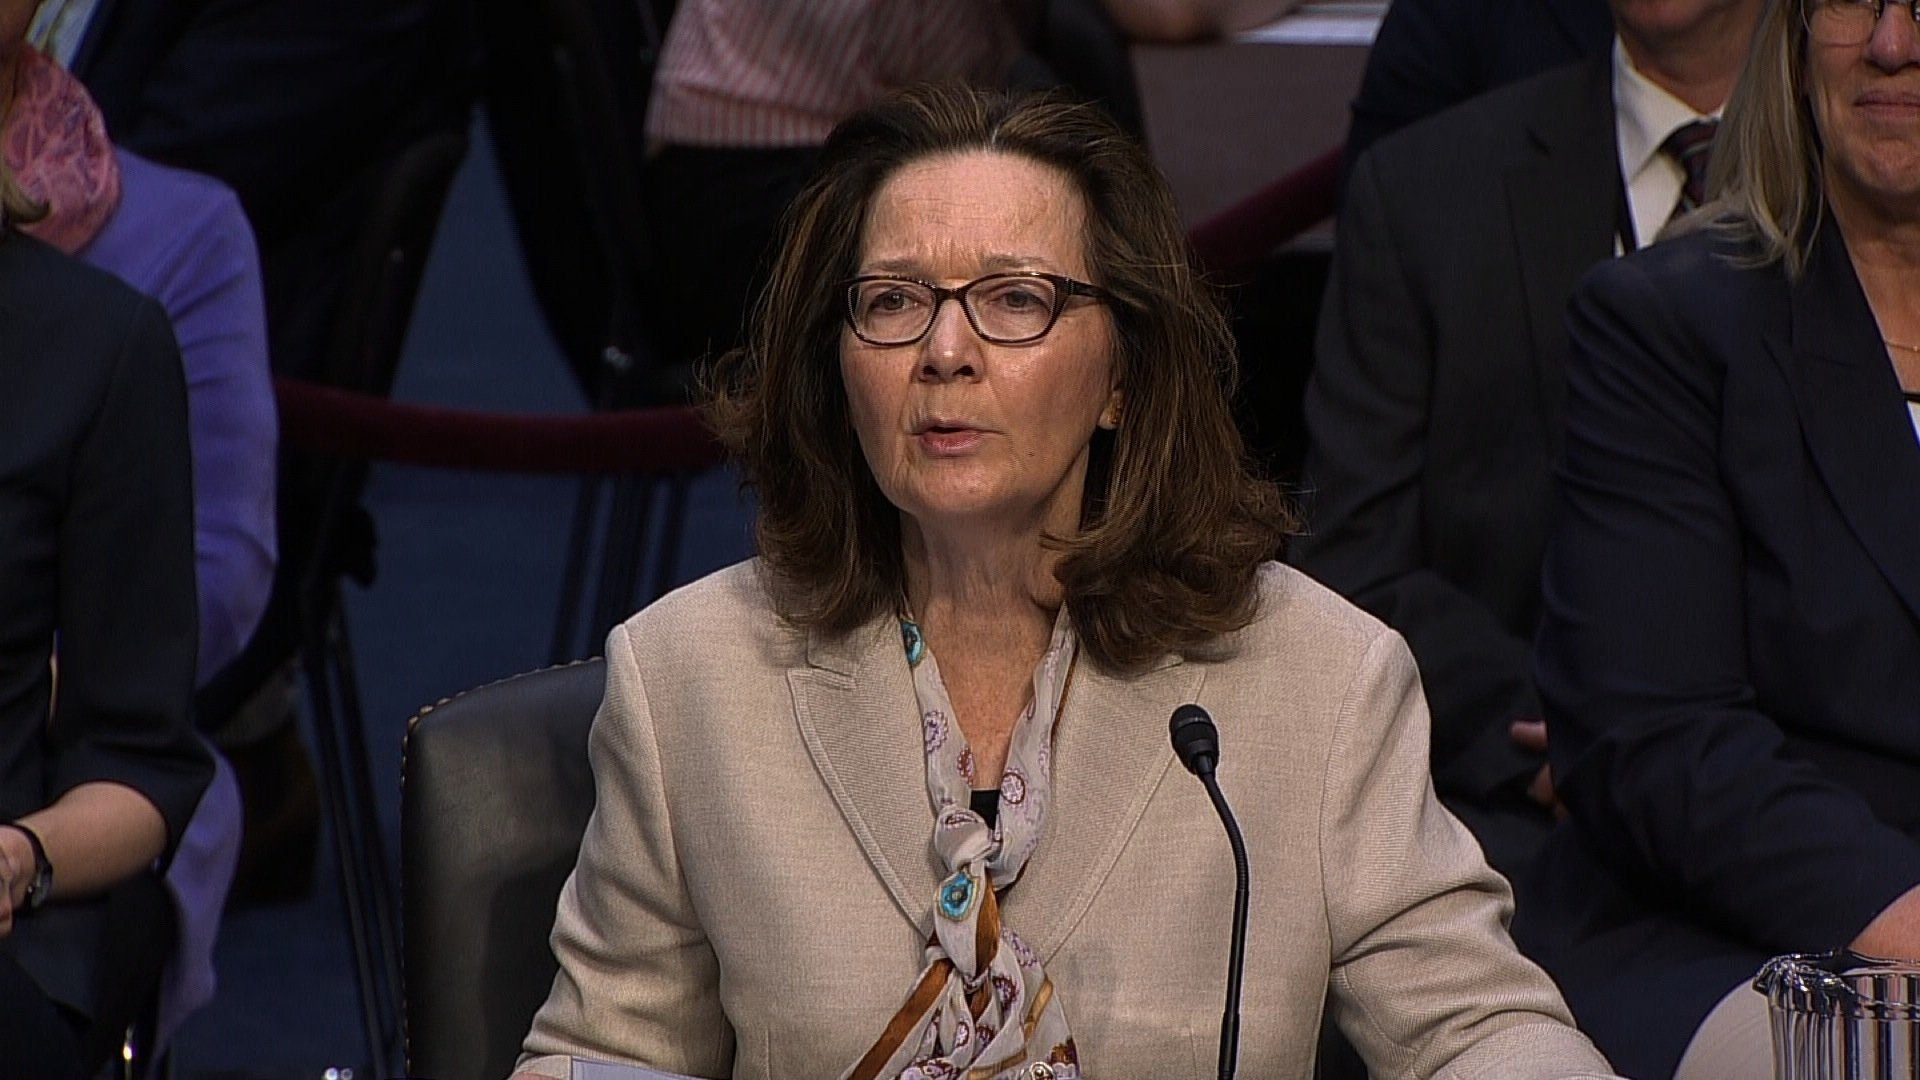 The Senate Intelligence Committee will vote behind closed doors Wednesday to advance Gina Haspel's nomination as President Donald Trump's CIA director pick. She looks all but assured to win Senate confirmation